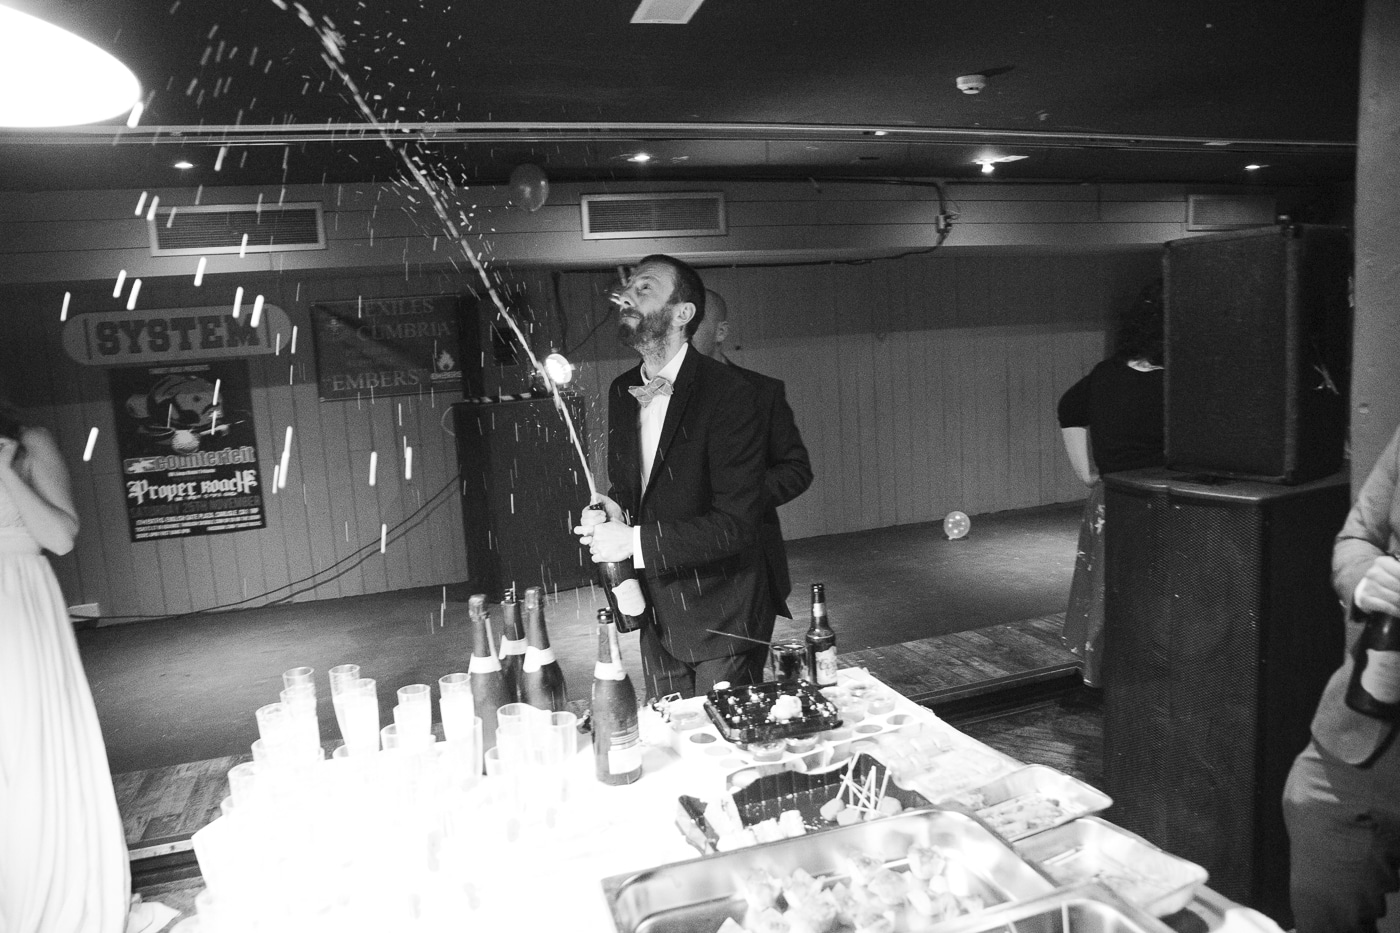 Man spraying bottle of champagne by Joshua Wyborn Photographic